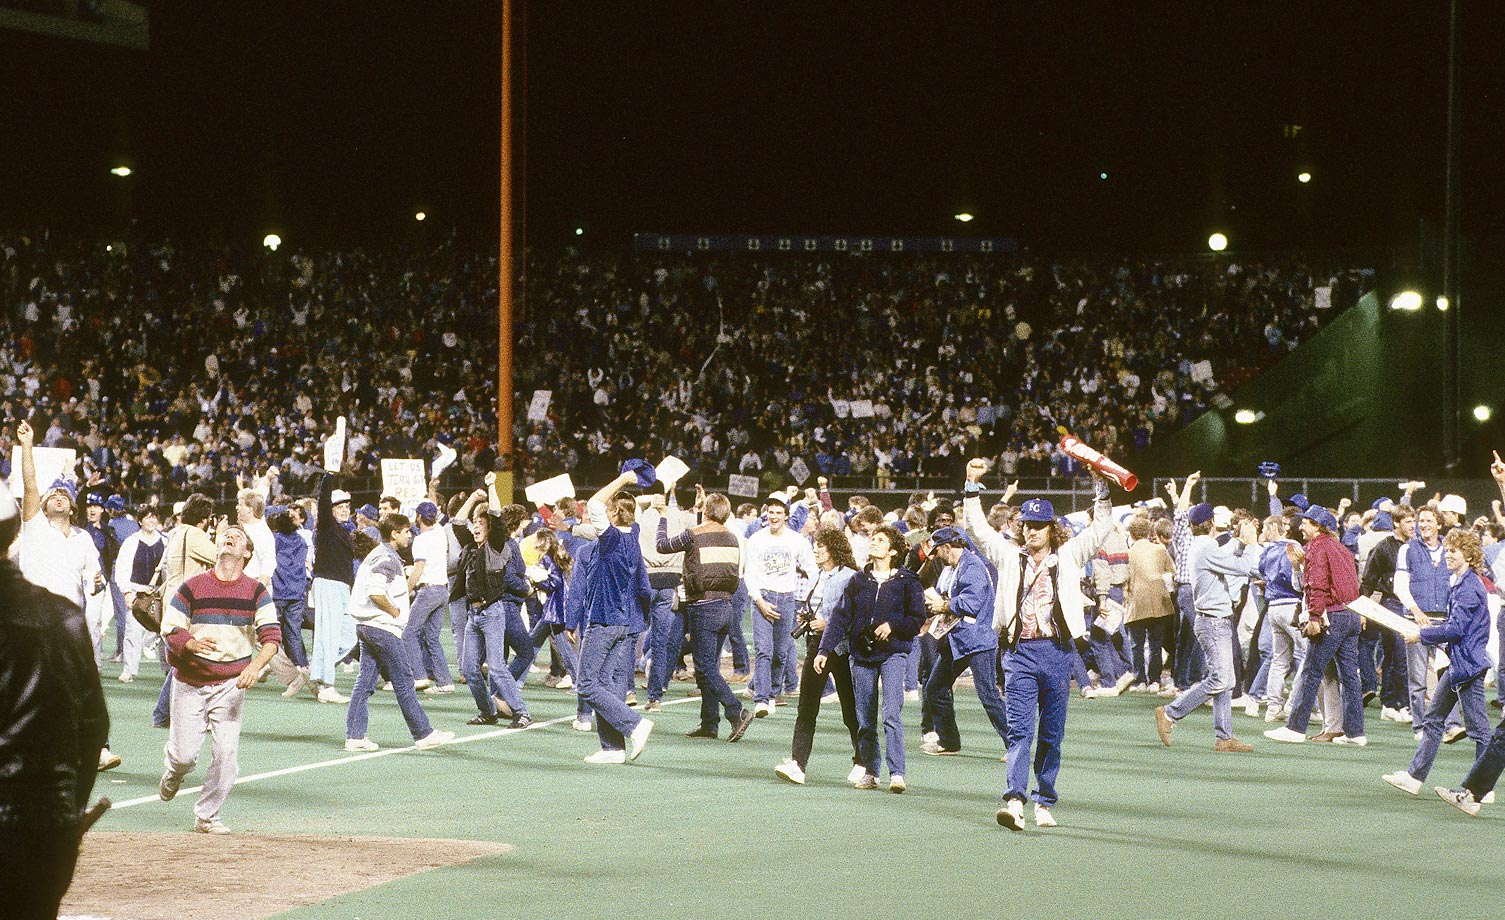 Royals fans rush the field after the Royals defeated the Cardinals in Game 7.